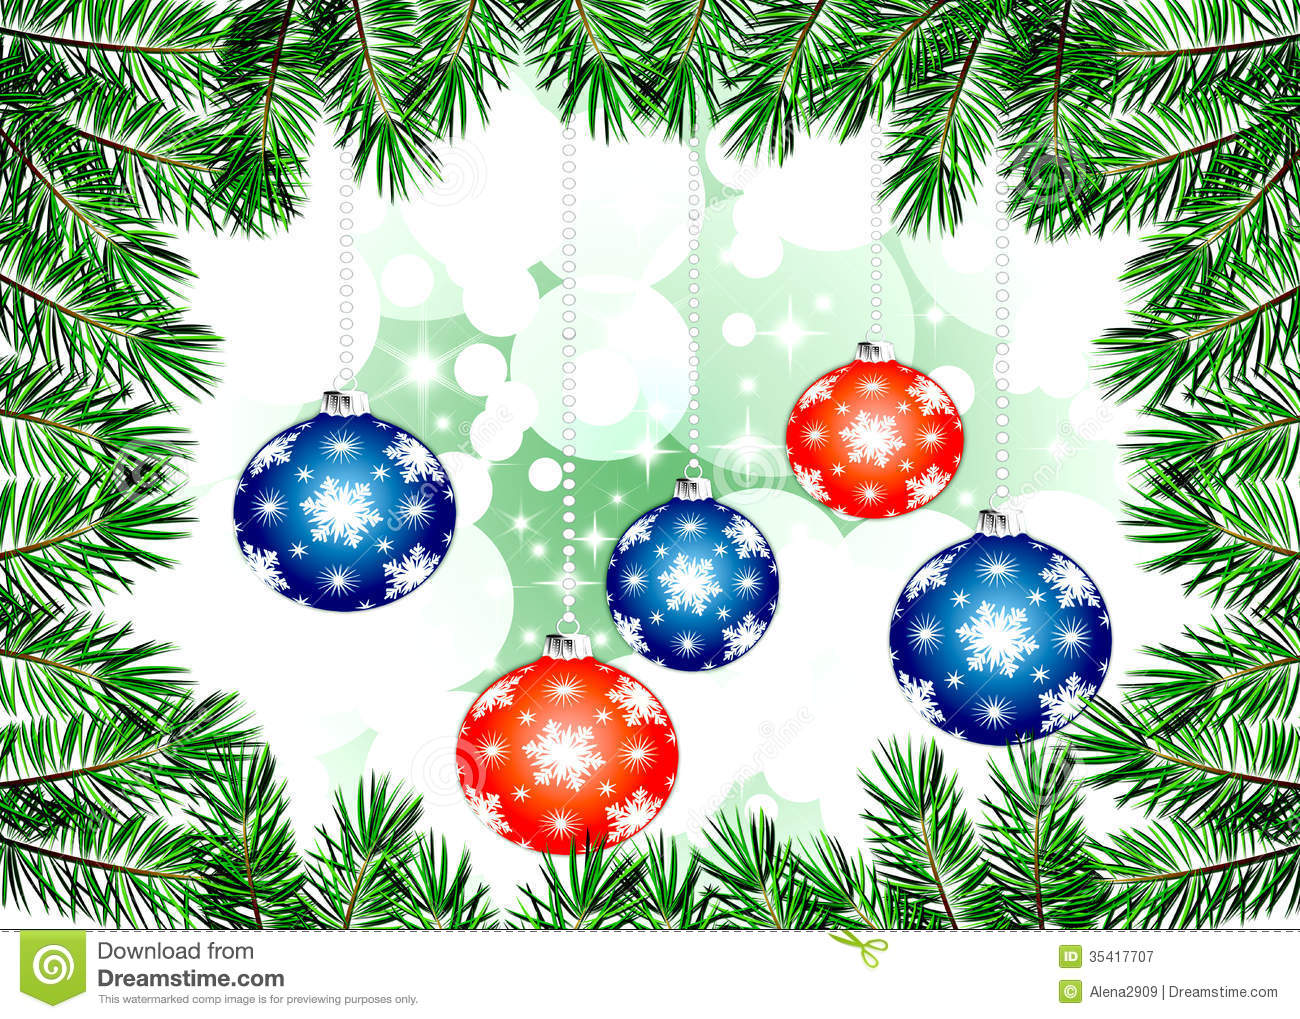 Christmas Backgrounds Illustration Royalty Free Stock